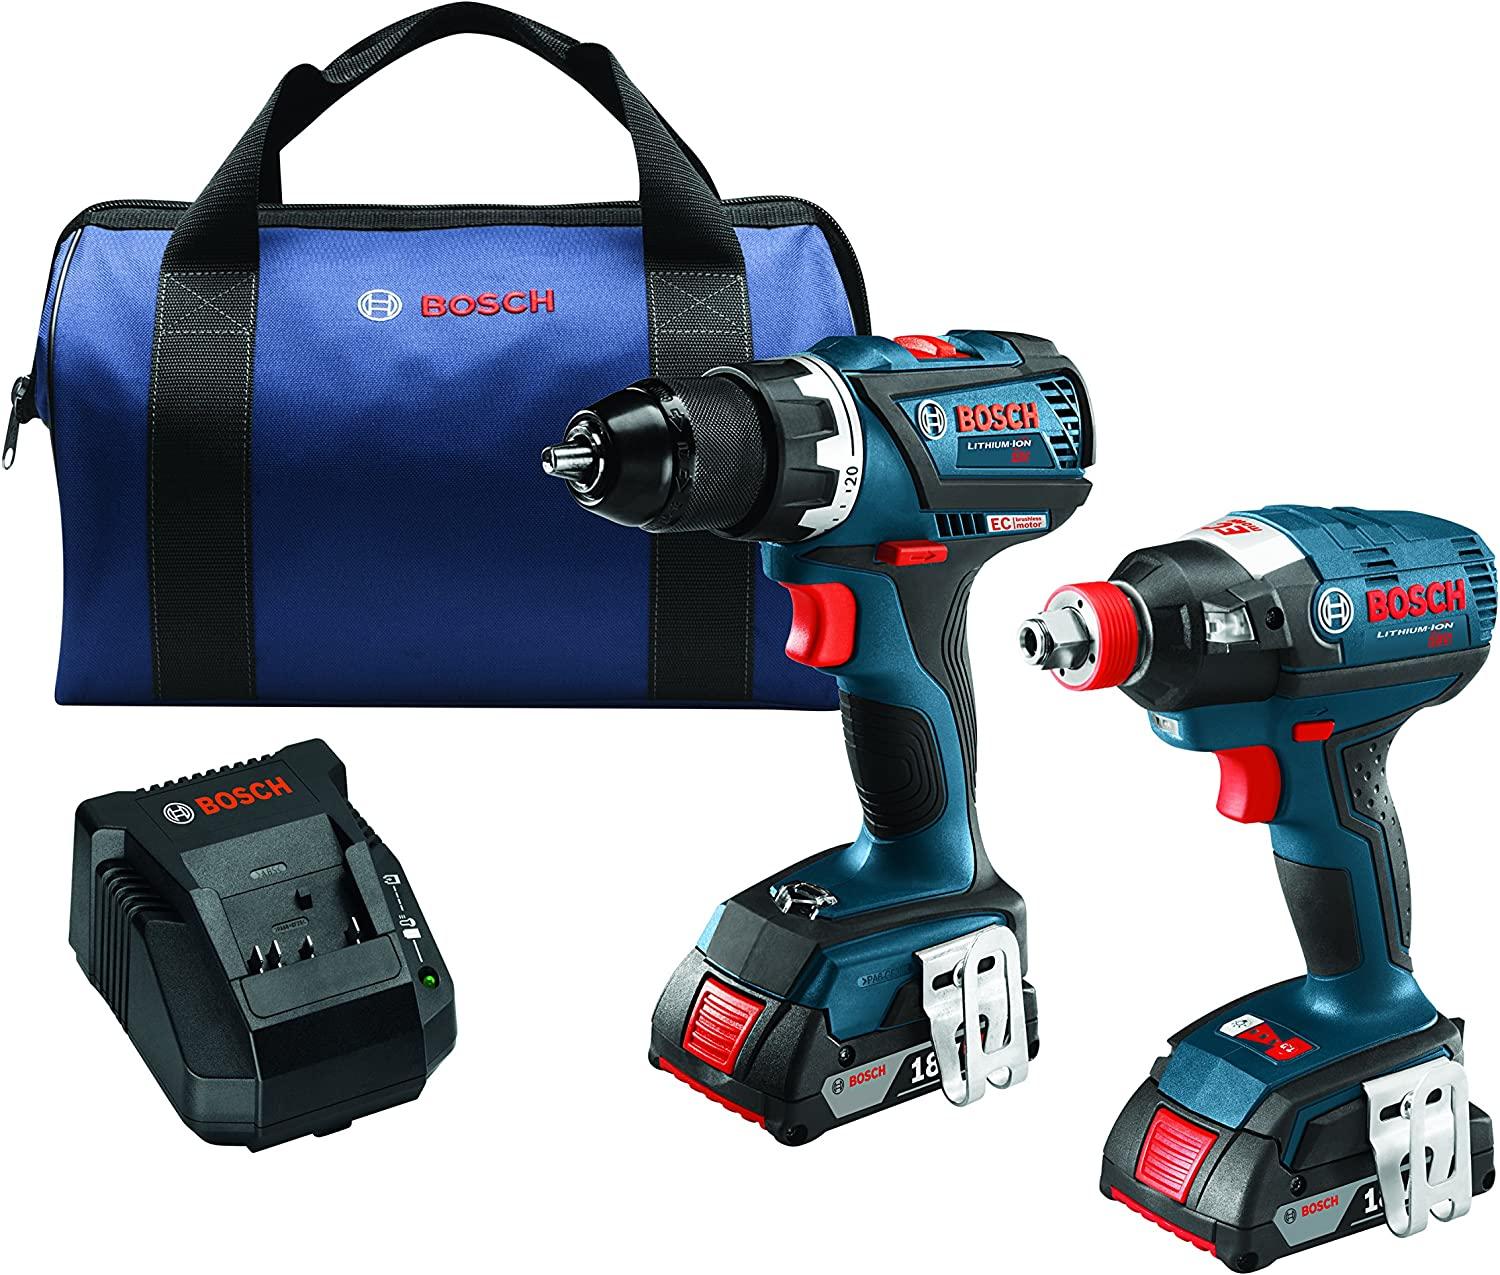 Bosch 18 V 2-Tool Combo Kit with EC Brushless 1 4 In. and 1 2 In. Socket-Ready Impact Driver and EC Brushless Compact Tough 1 2 In. Drill Driver CLPK238-181